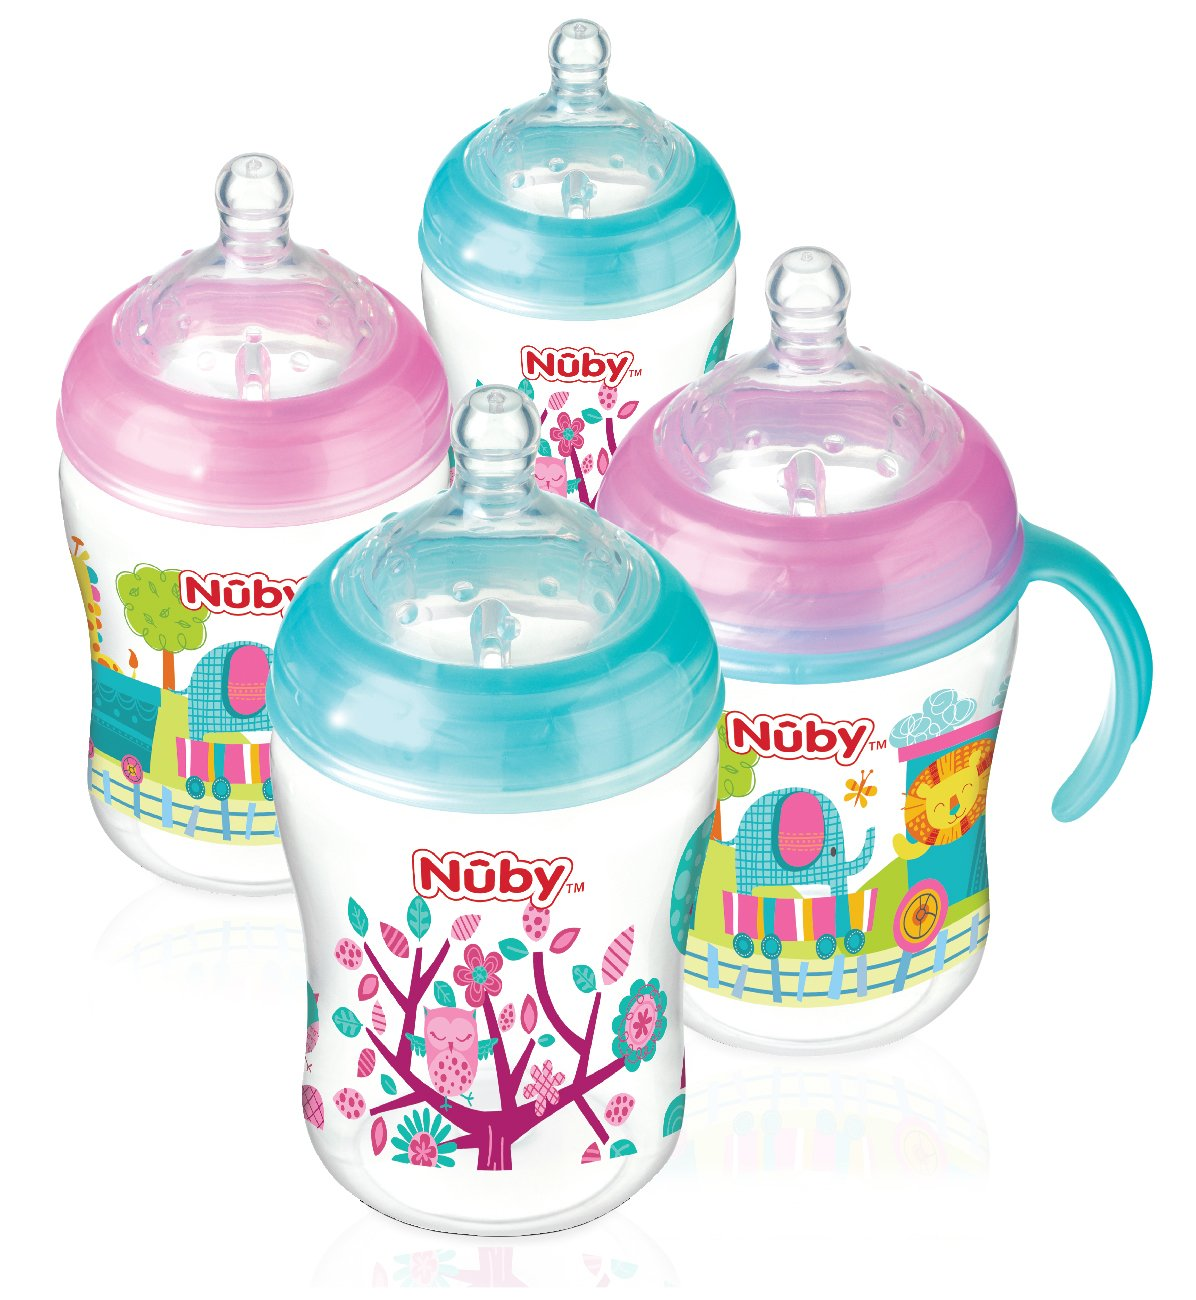 Nuby Natural Touch Anti-Colic Bottles, Pink/Aqua, 270 ml, Pack of 4 92808